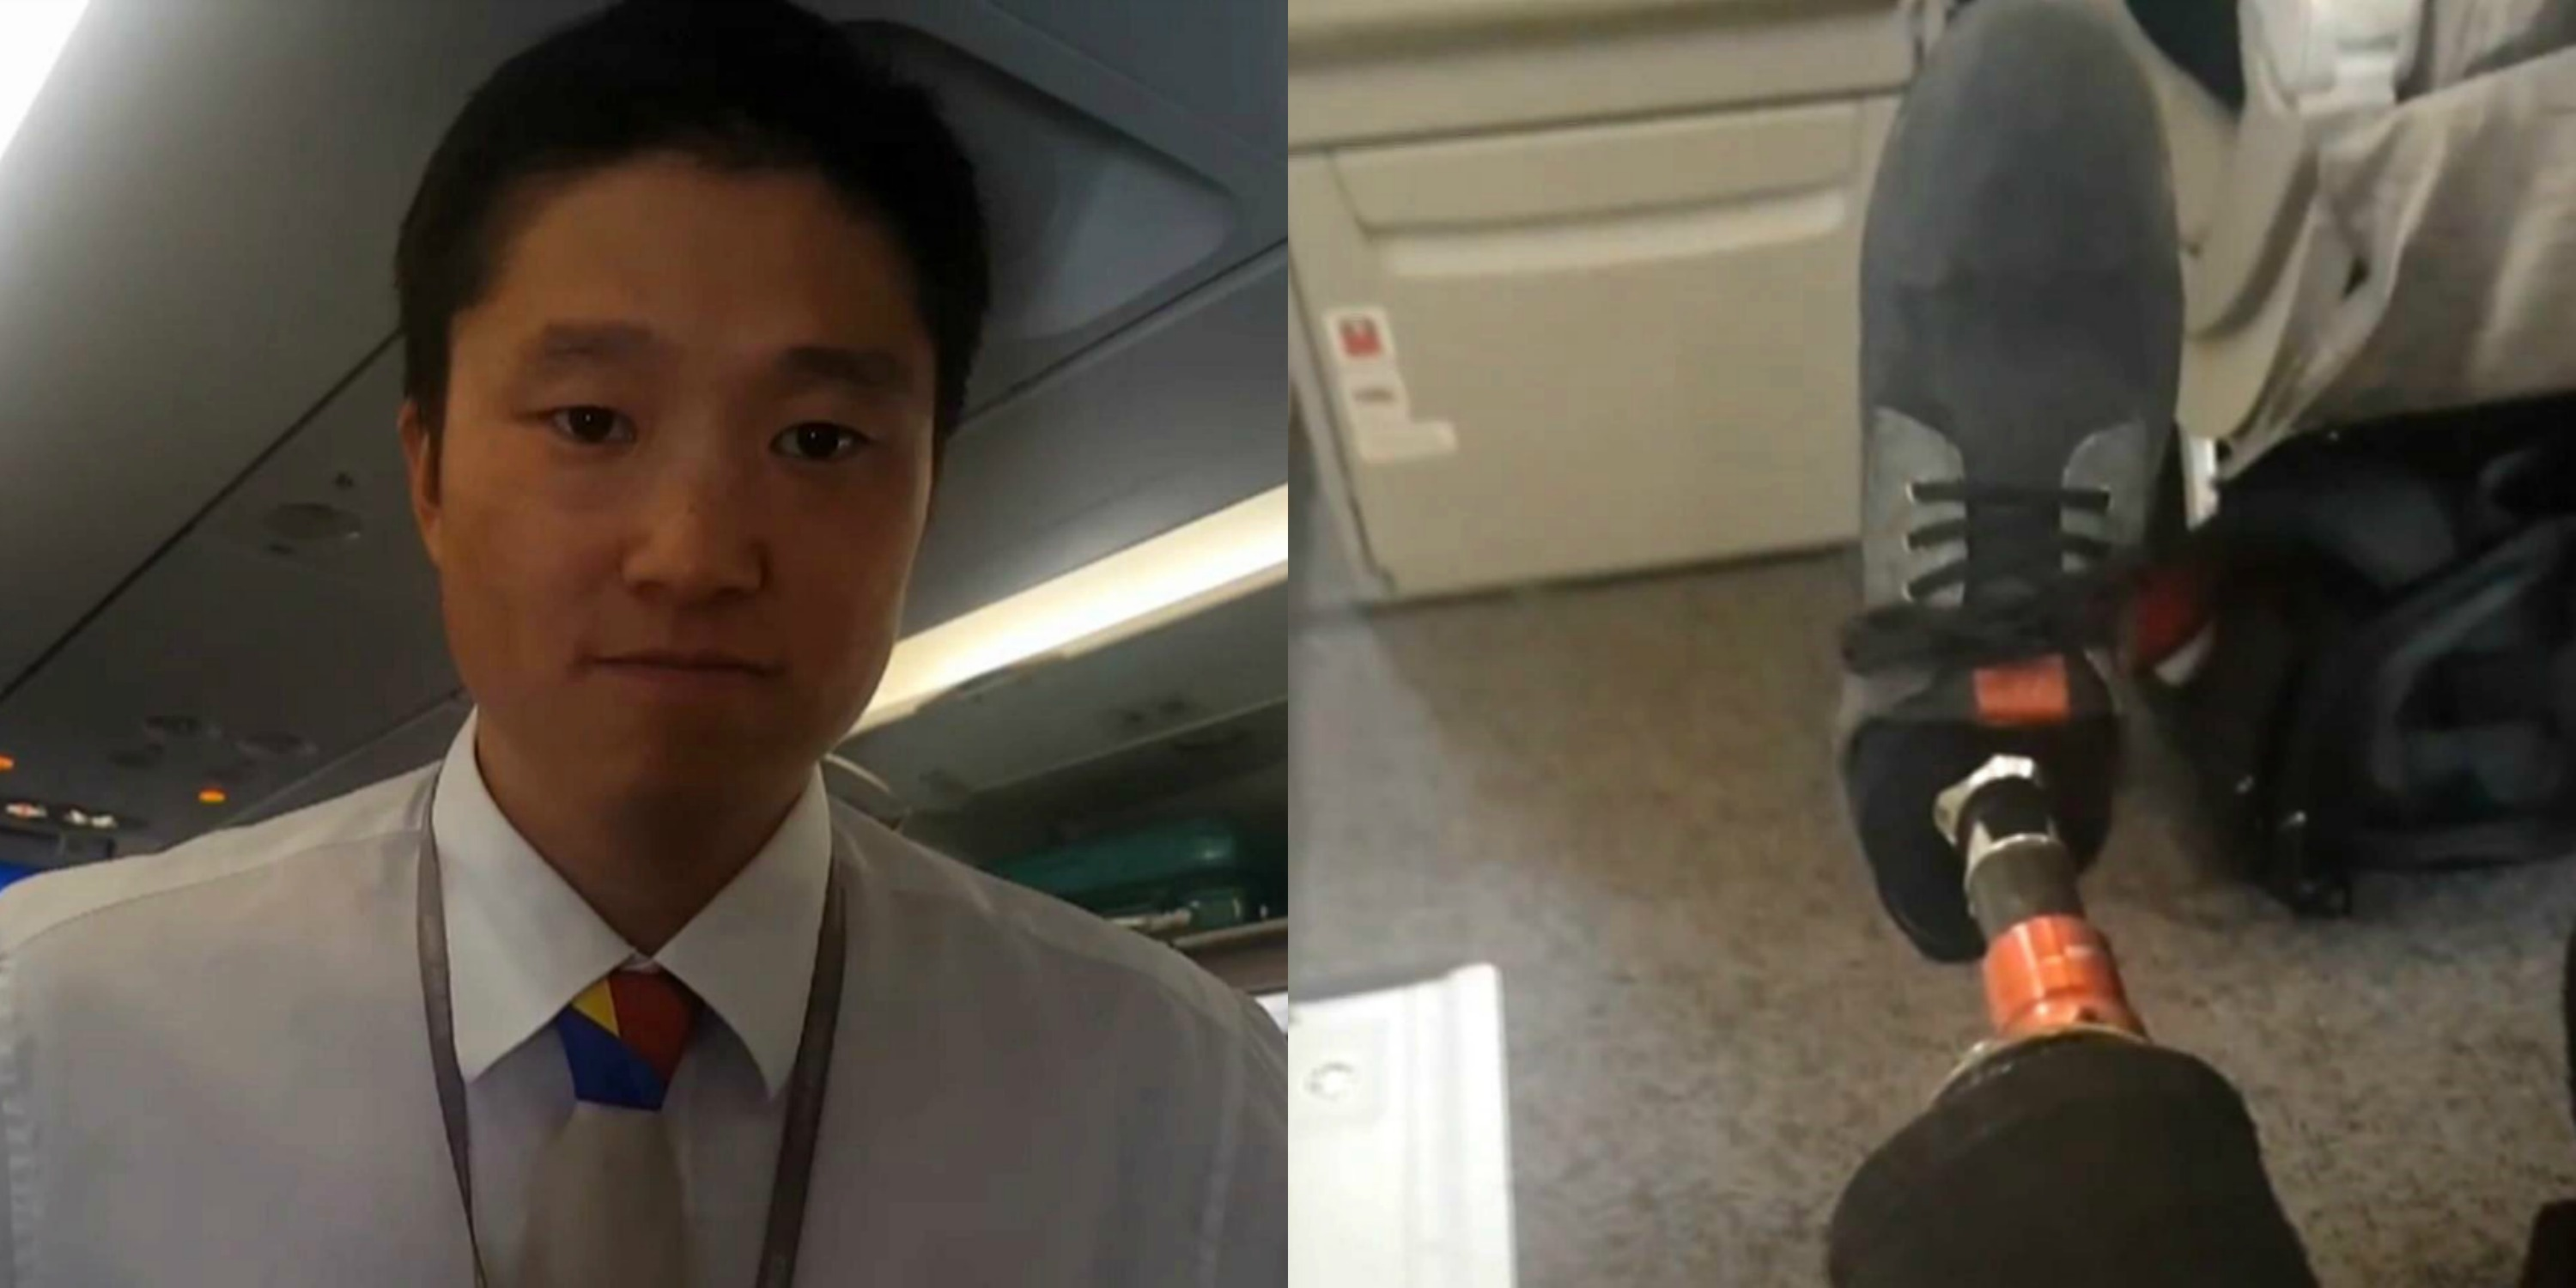 A man with a prosthetic leg claims he was discriminated against after he was asked to vacate his exit row seat on an Asiana Airlines flight. (May 21, 2017)